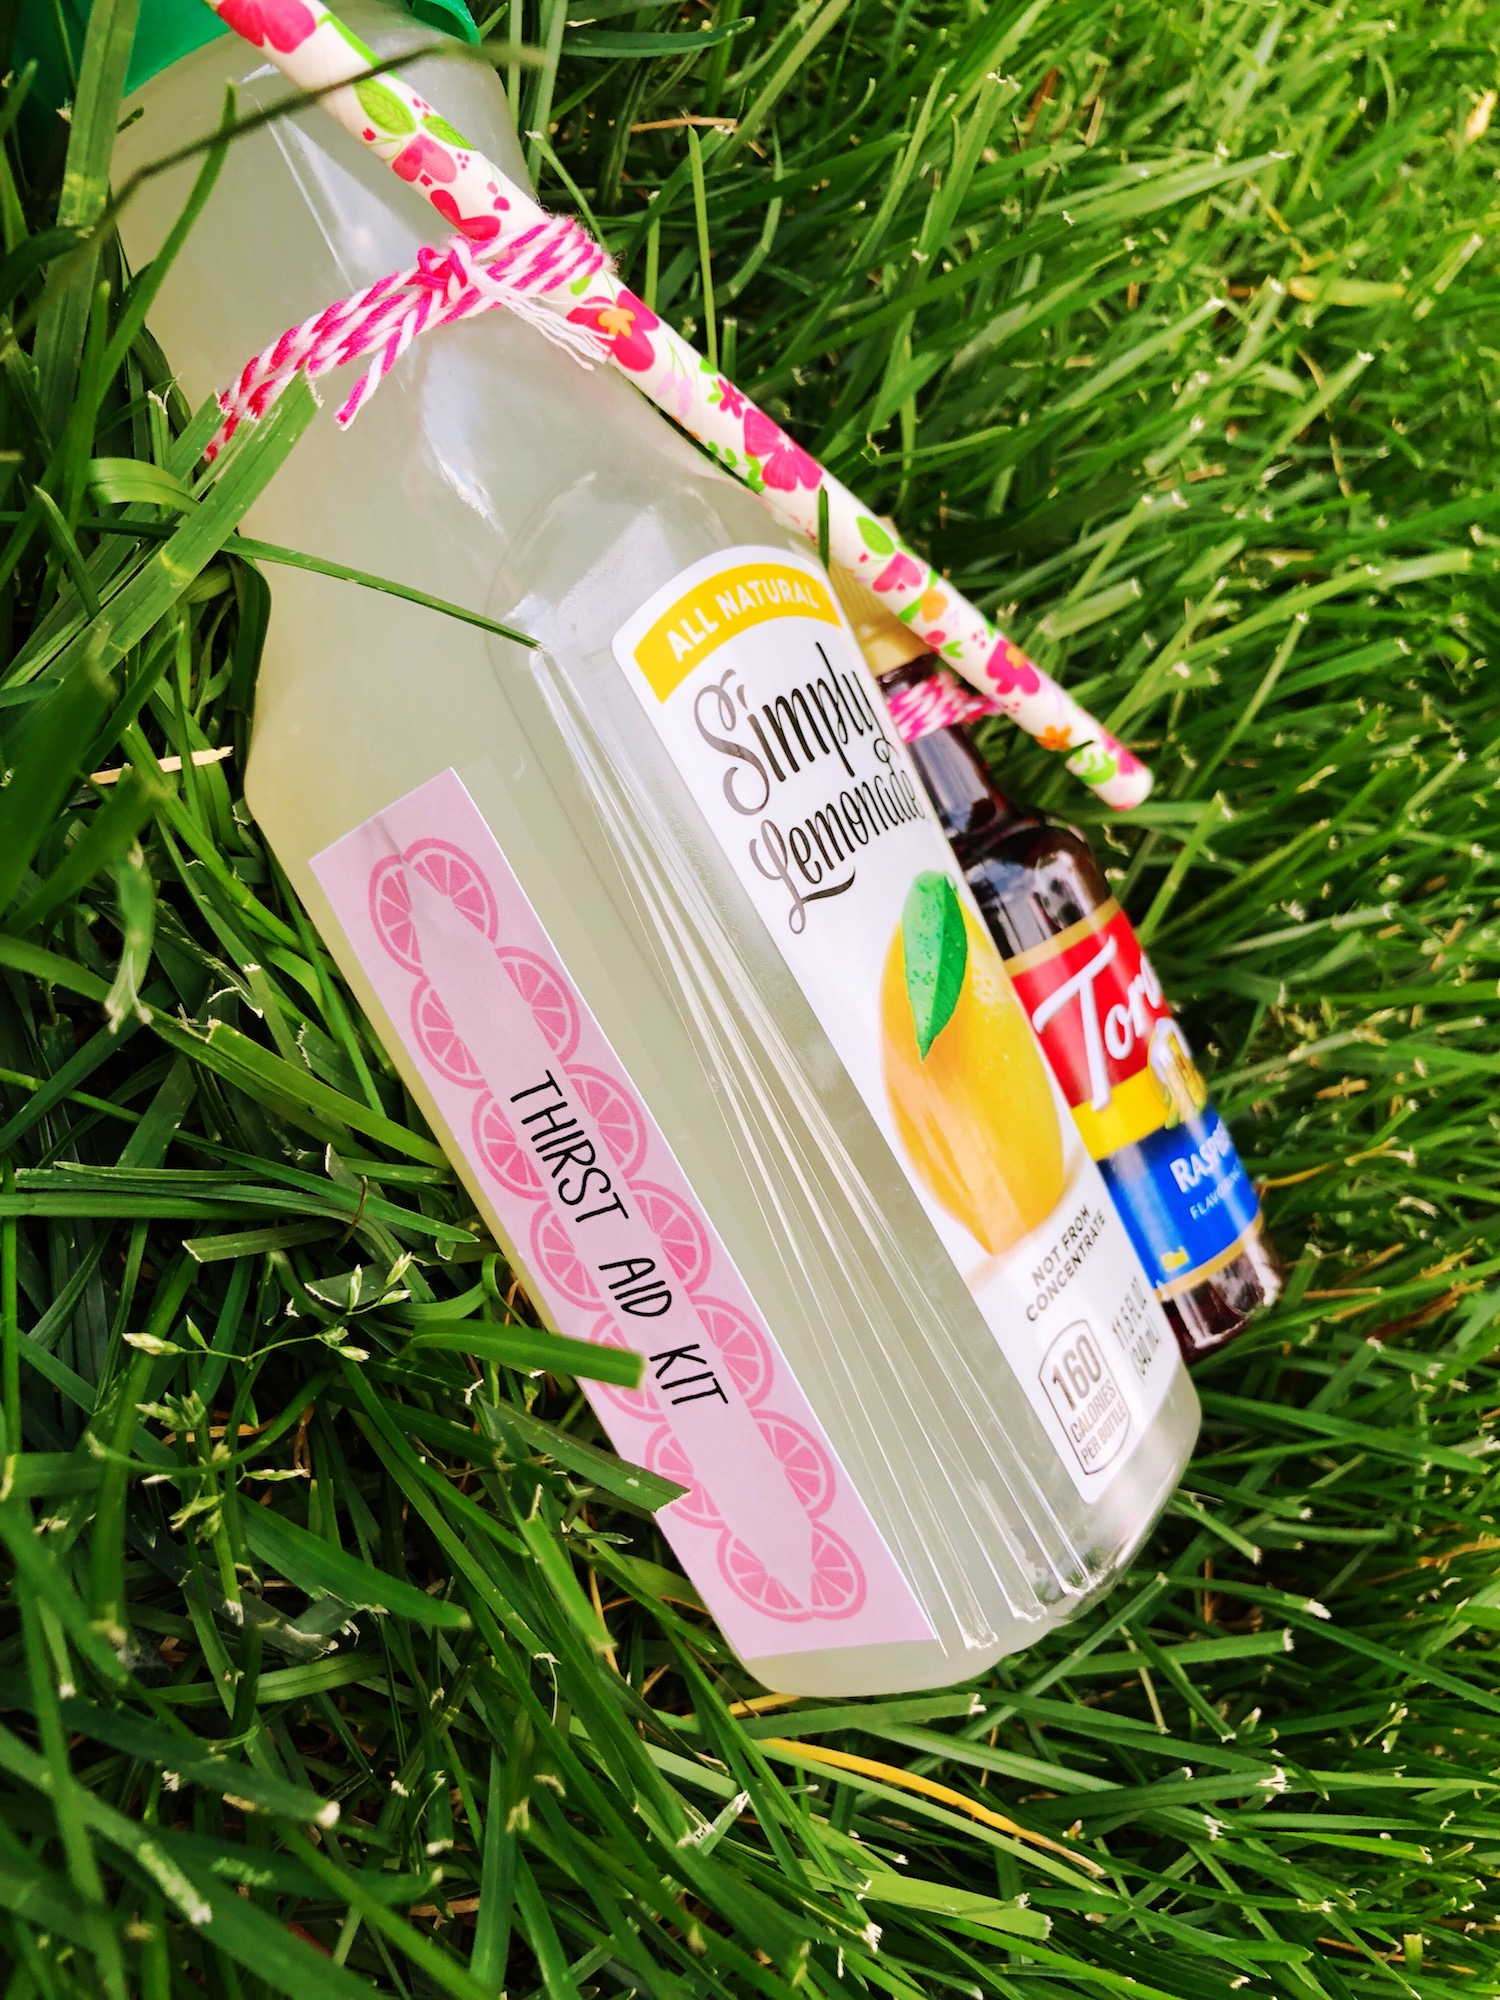 Thirst Aid Kit_Summer Drinks_Lemonade Party Favor_Design Organize Party.JPG